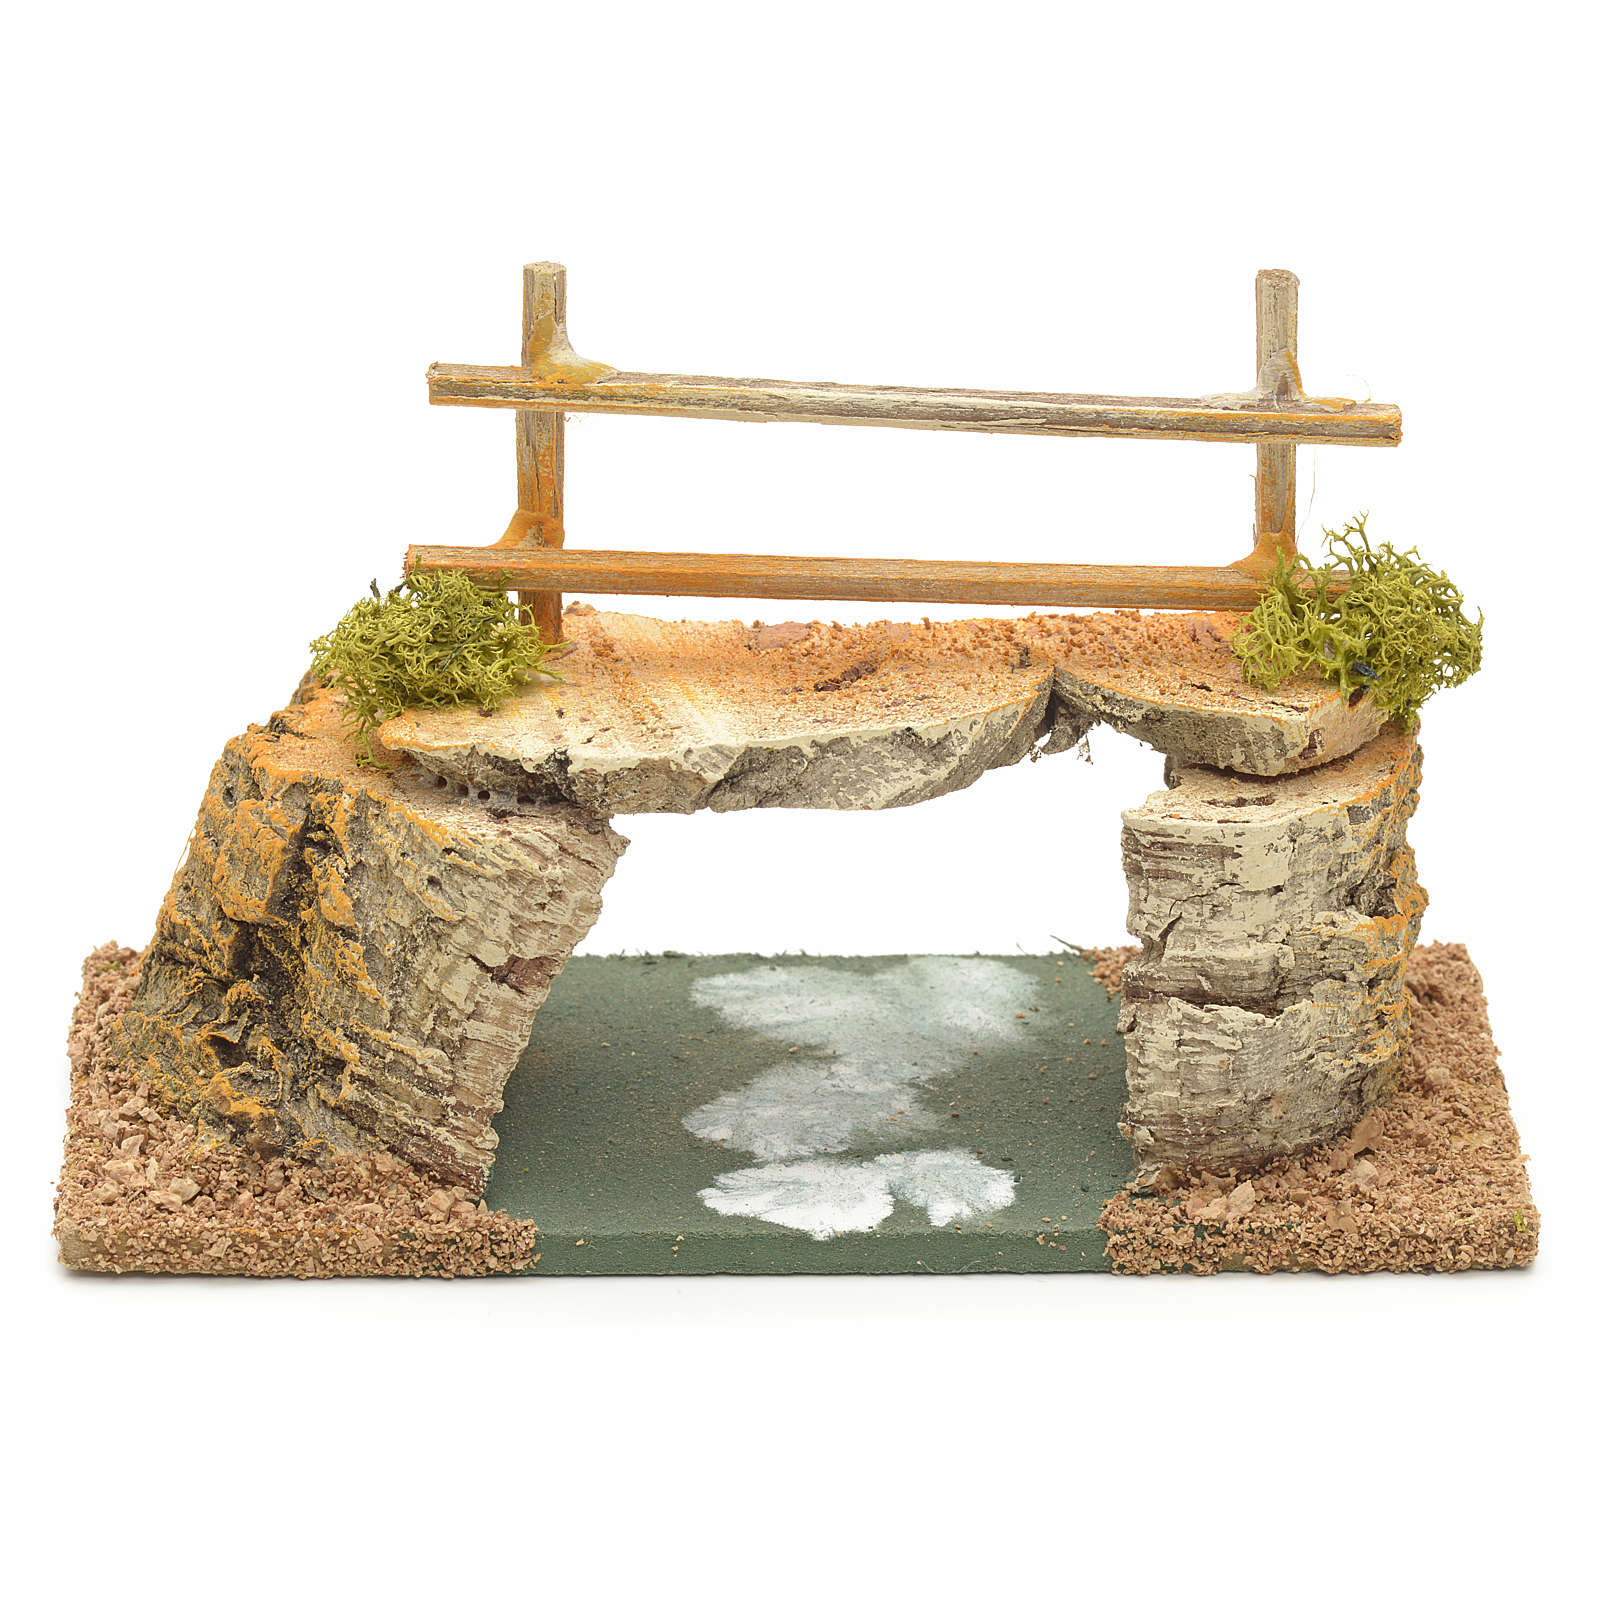 Nativity setting, cork bridge 8x15x7cm 4